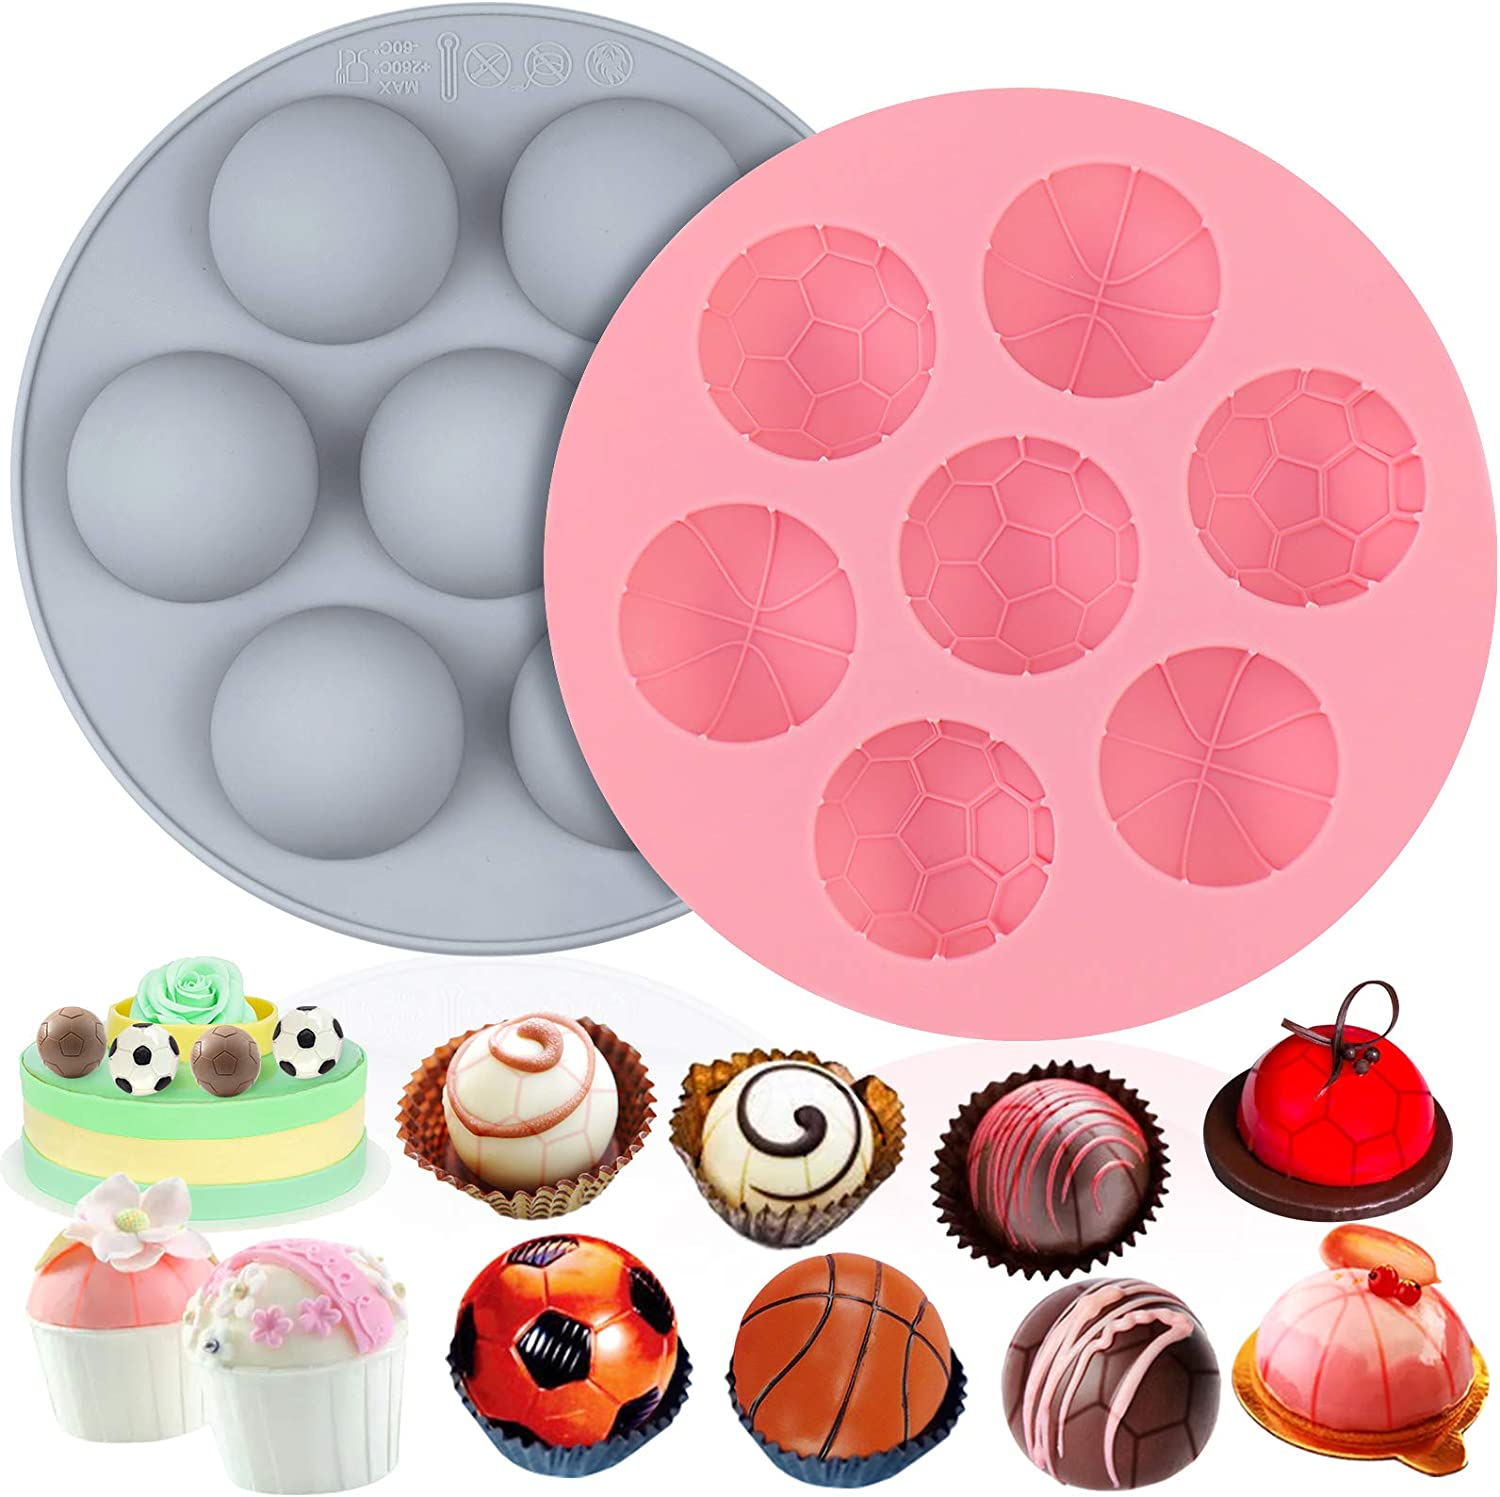 Palksky 2 Packs Semi Sphere Silicone Molds, Half Ball Shaped Cocoa Bombs Mold Non Stick Baking Molds for Making Football Hot Chocolate Bomb Basketball Dome Mousse, Jelly Pudding, Cake Decorating